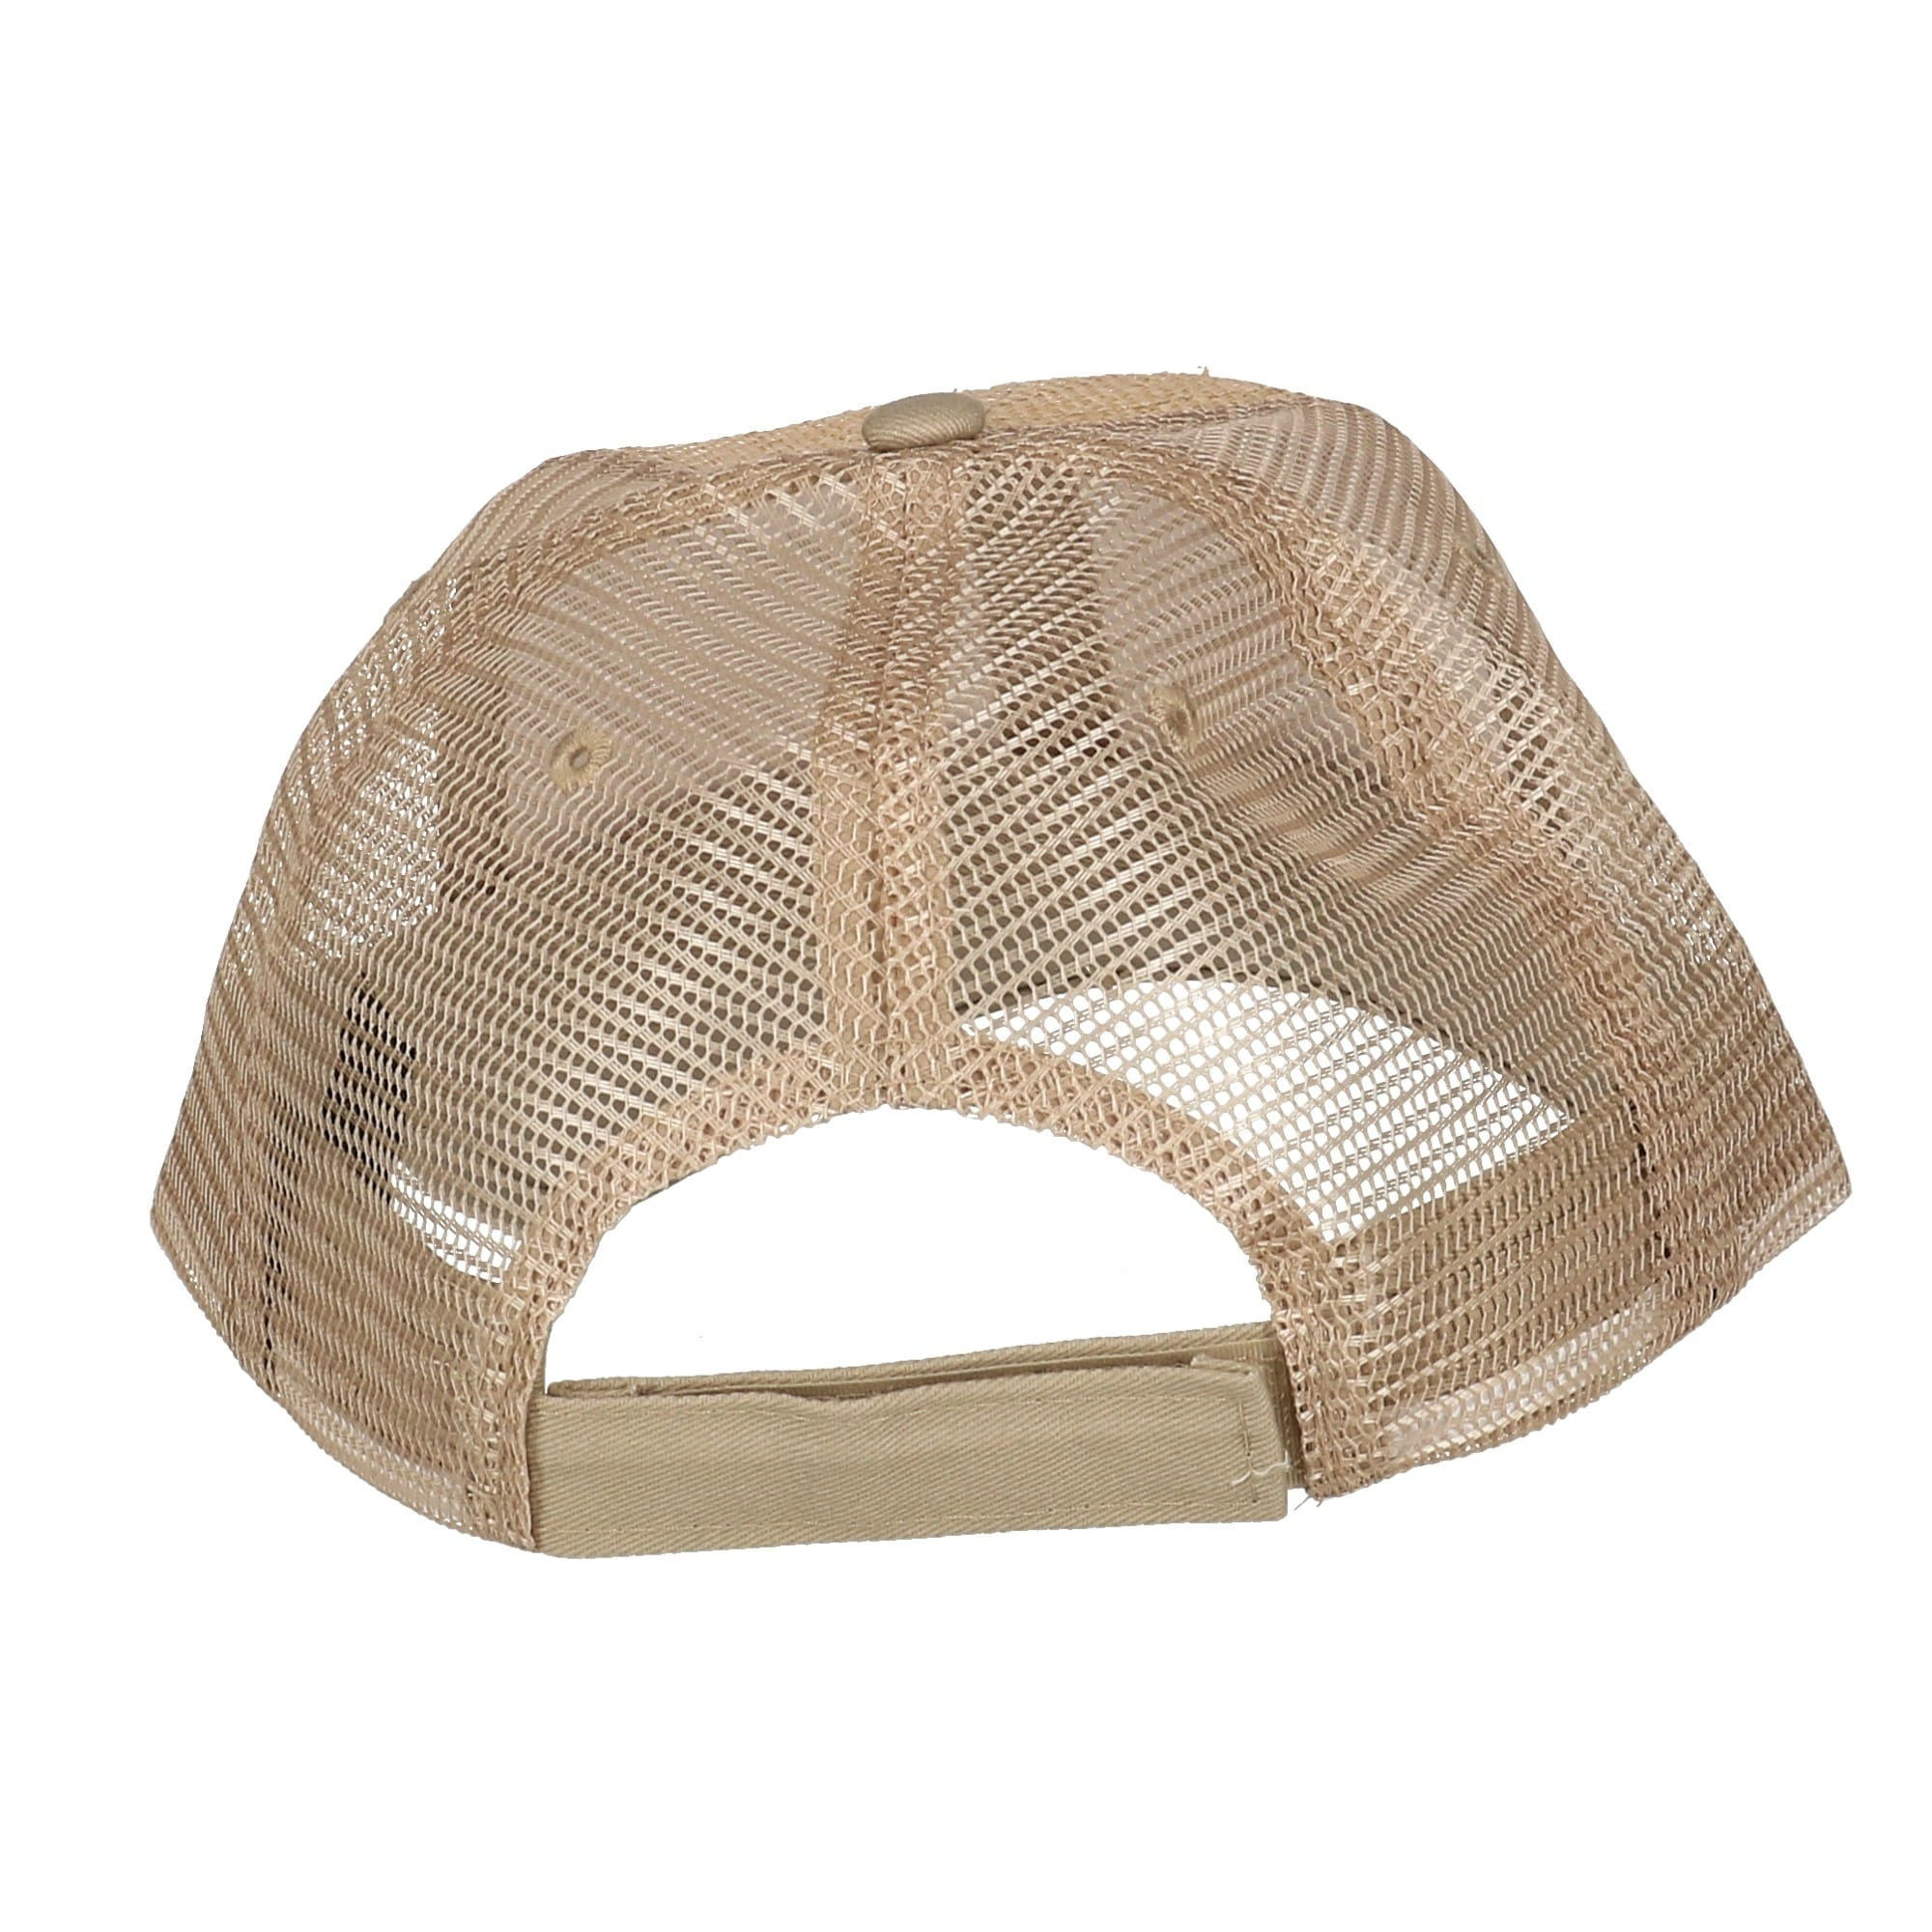 Shop DPC Outdoor Design Men s Structured Raffia Baseball Cap with Mesh Back  - Free Shipping On Orders Over  45 - Overstock.com - 20499416 32b439ead49